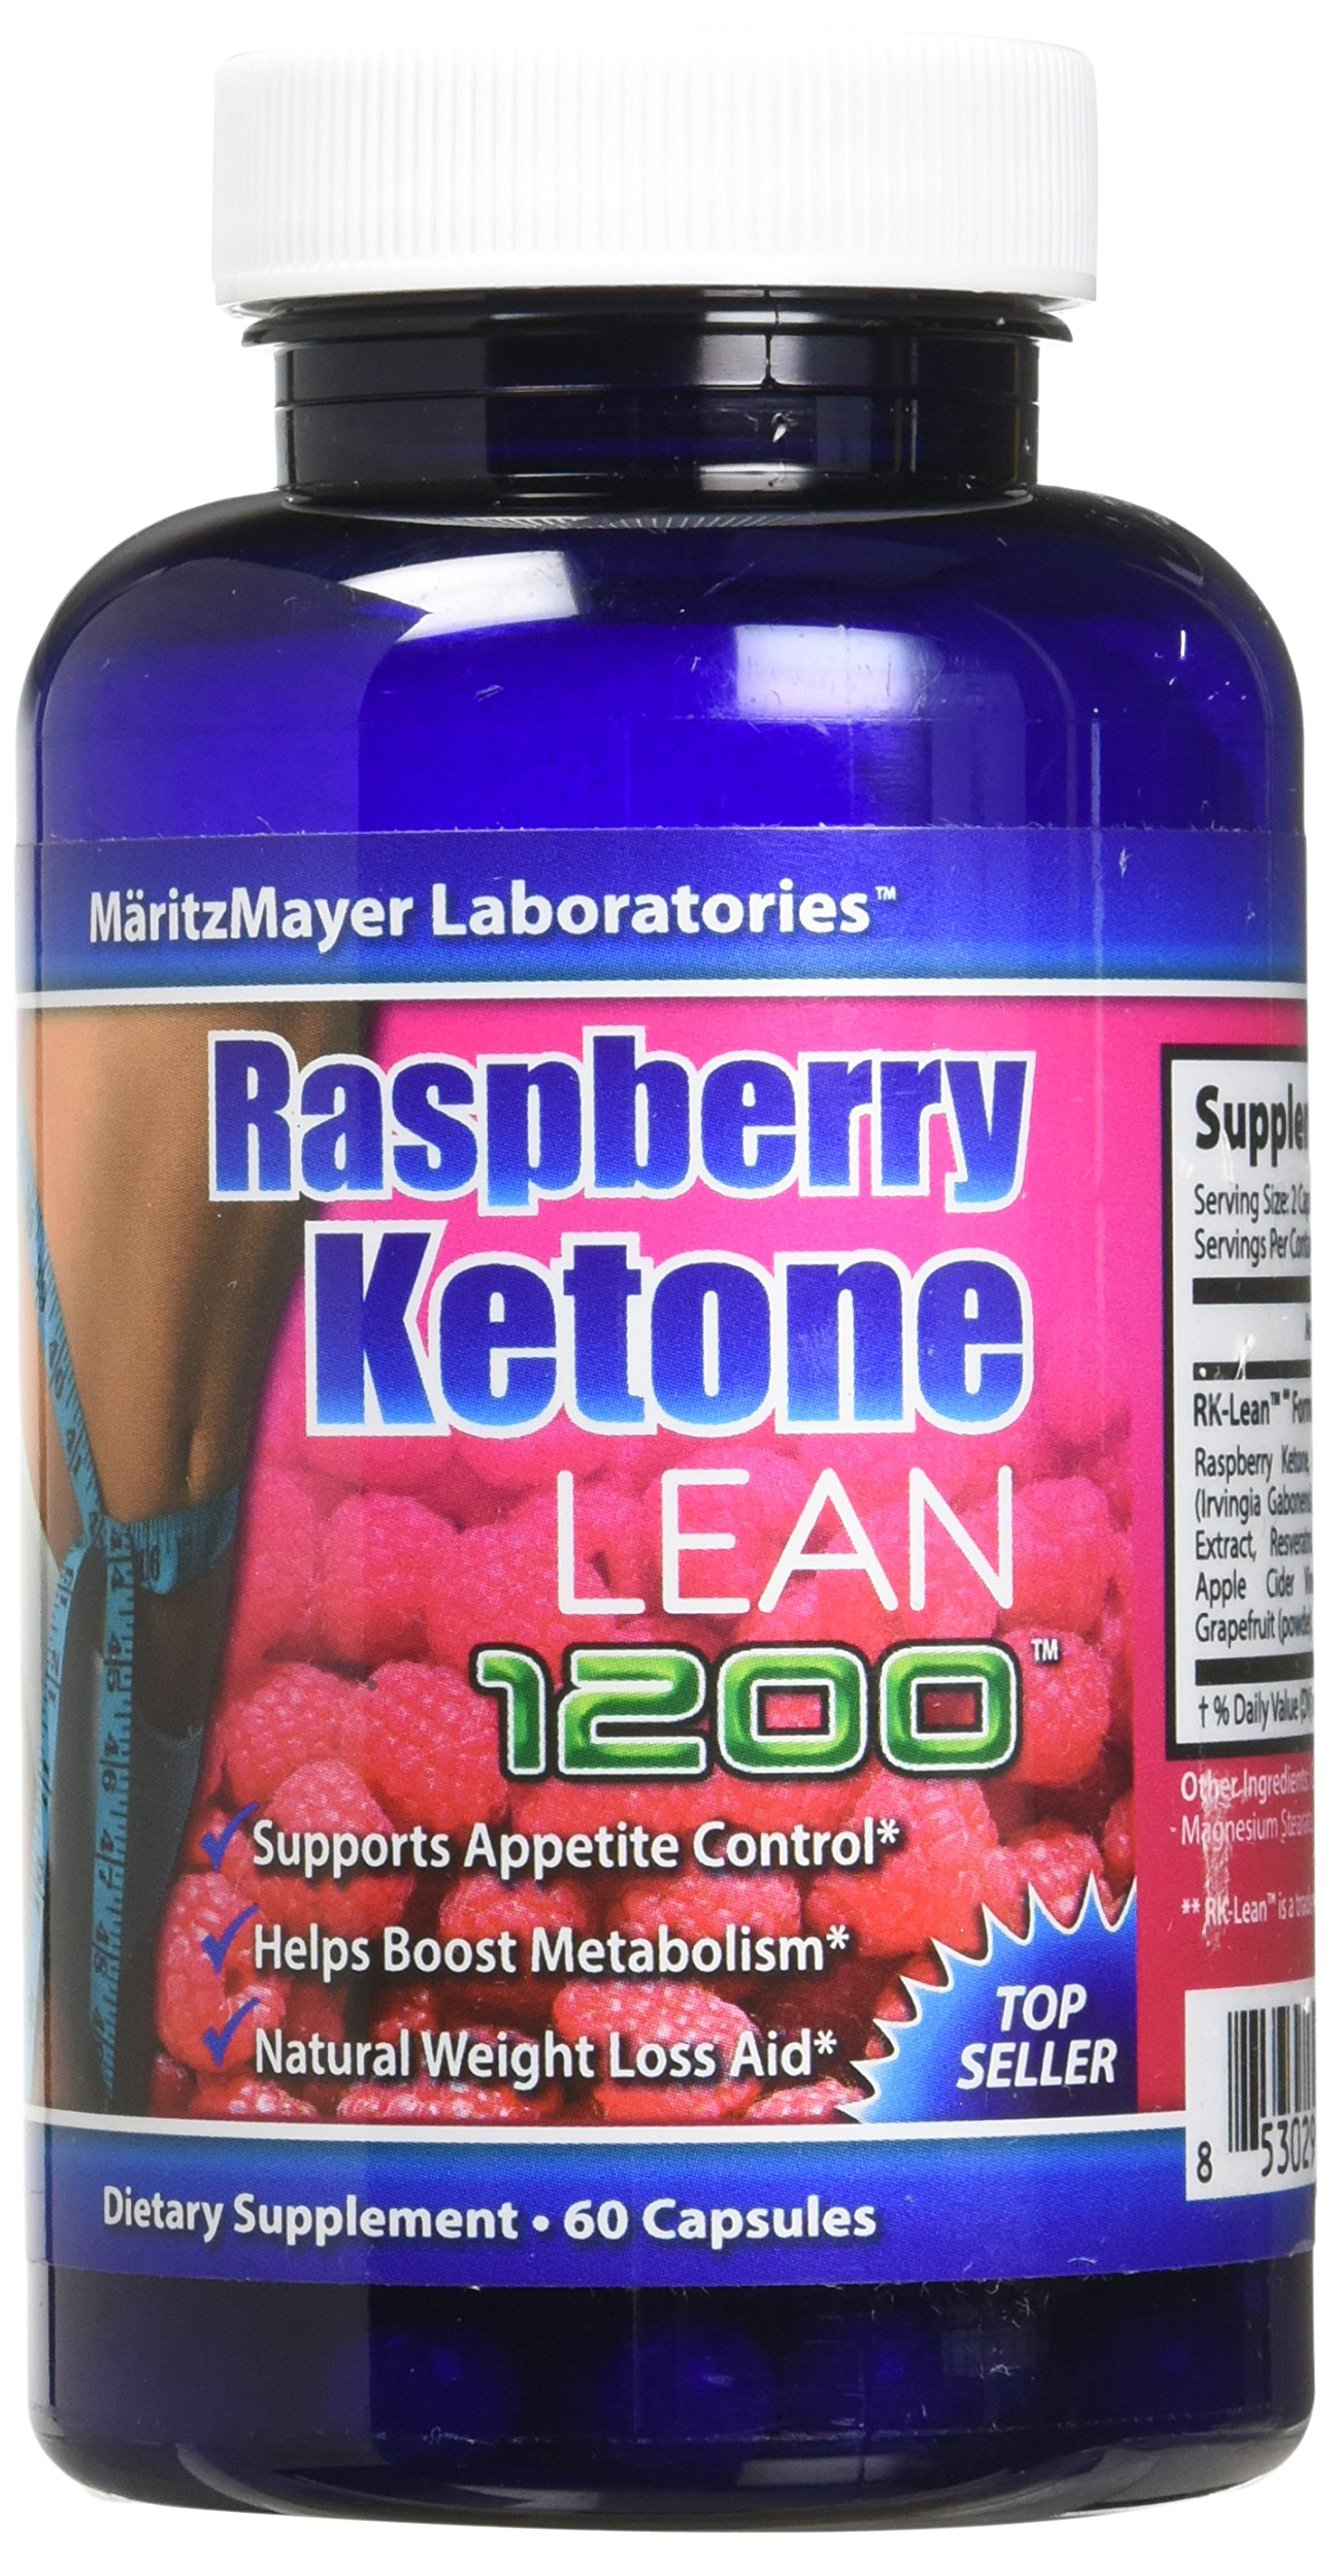 Raspberry Ketone Lean Advanced Weight Loss 60 Capsules - 2 Pack by Maritz Mayer